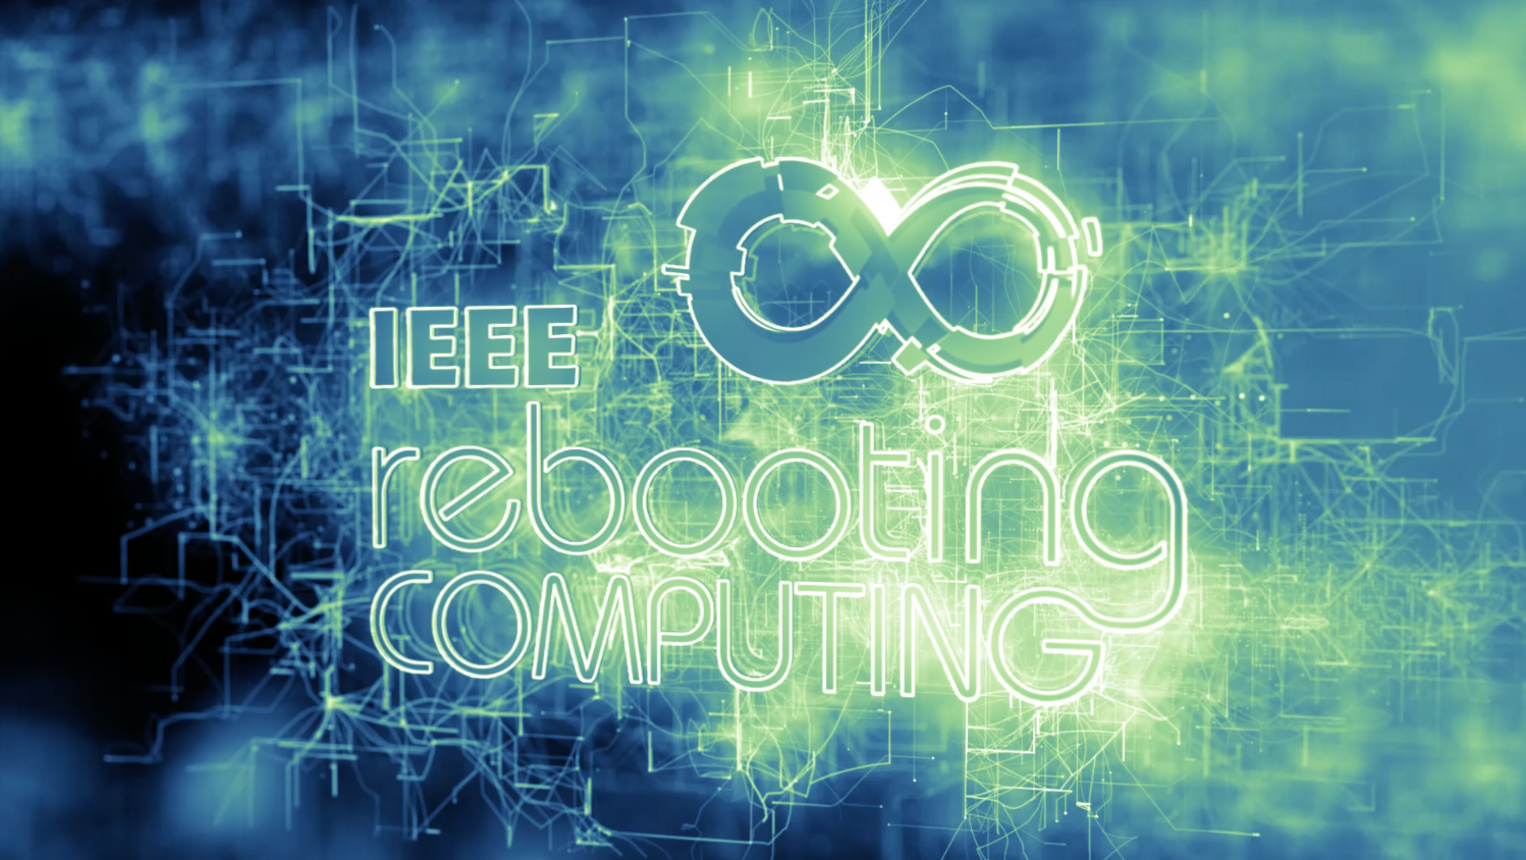 Learn About Rebooting Computing